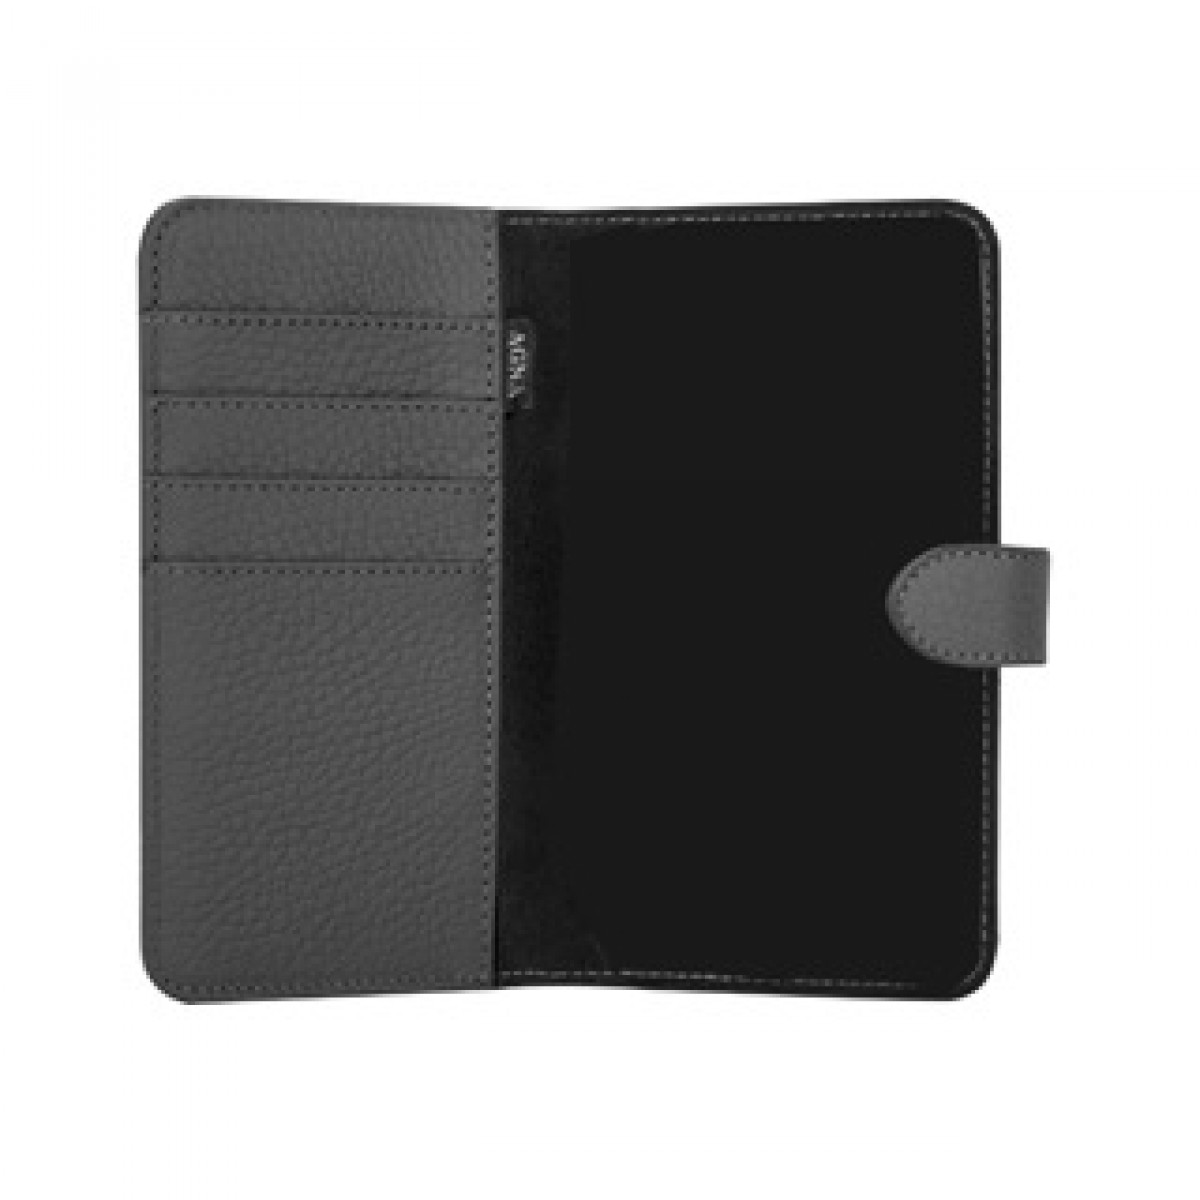 Universal Xqisit Black Magneat Agna Magnetic Wallet case - Intouch Wireless  - Intouch Wireless 88bd22d7a3162